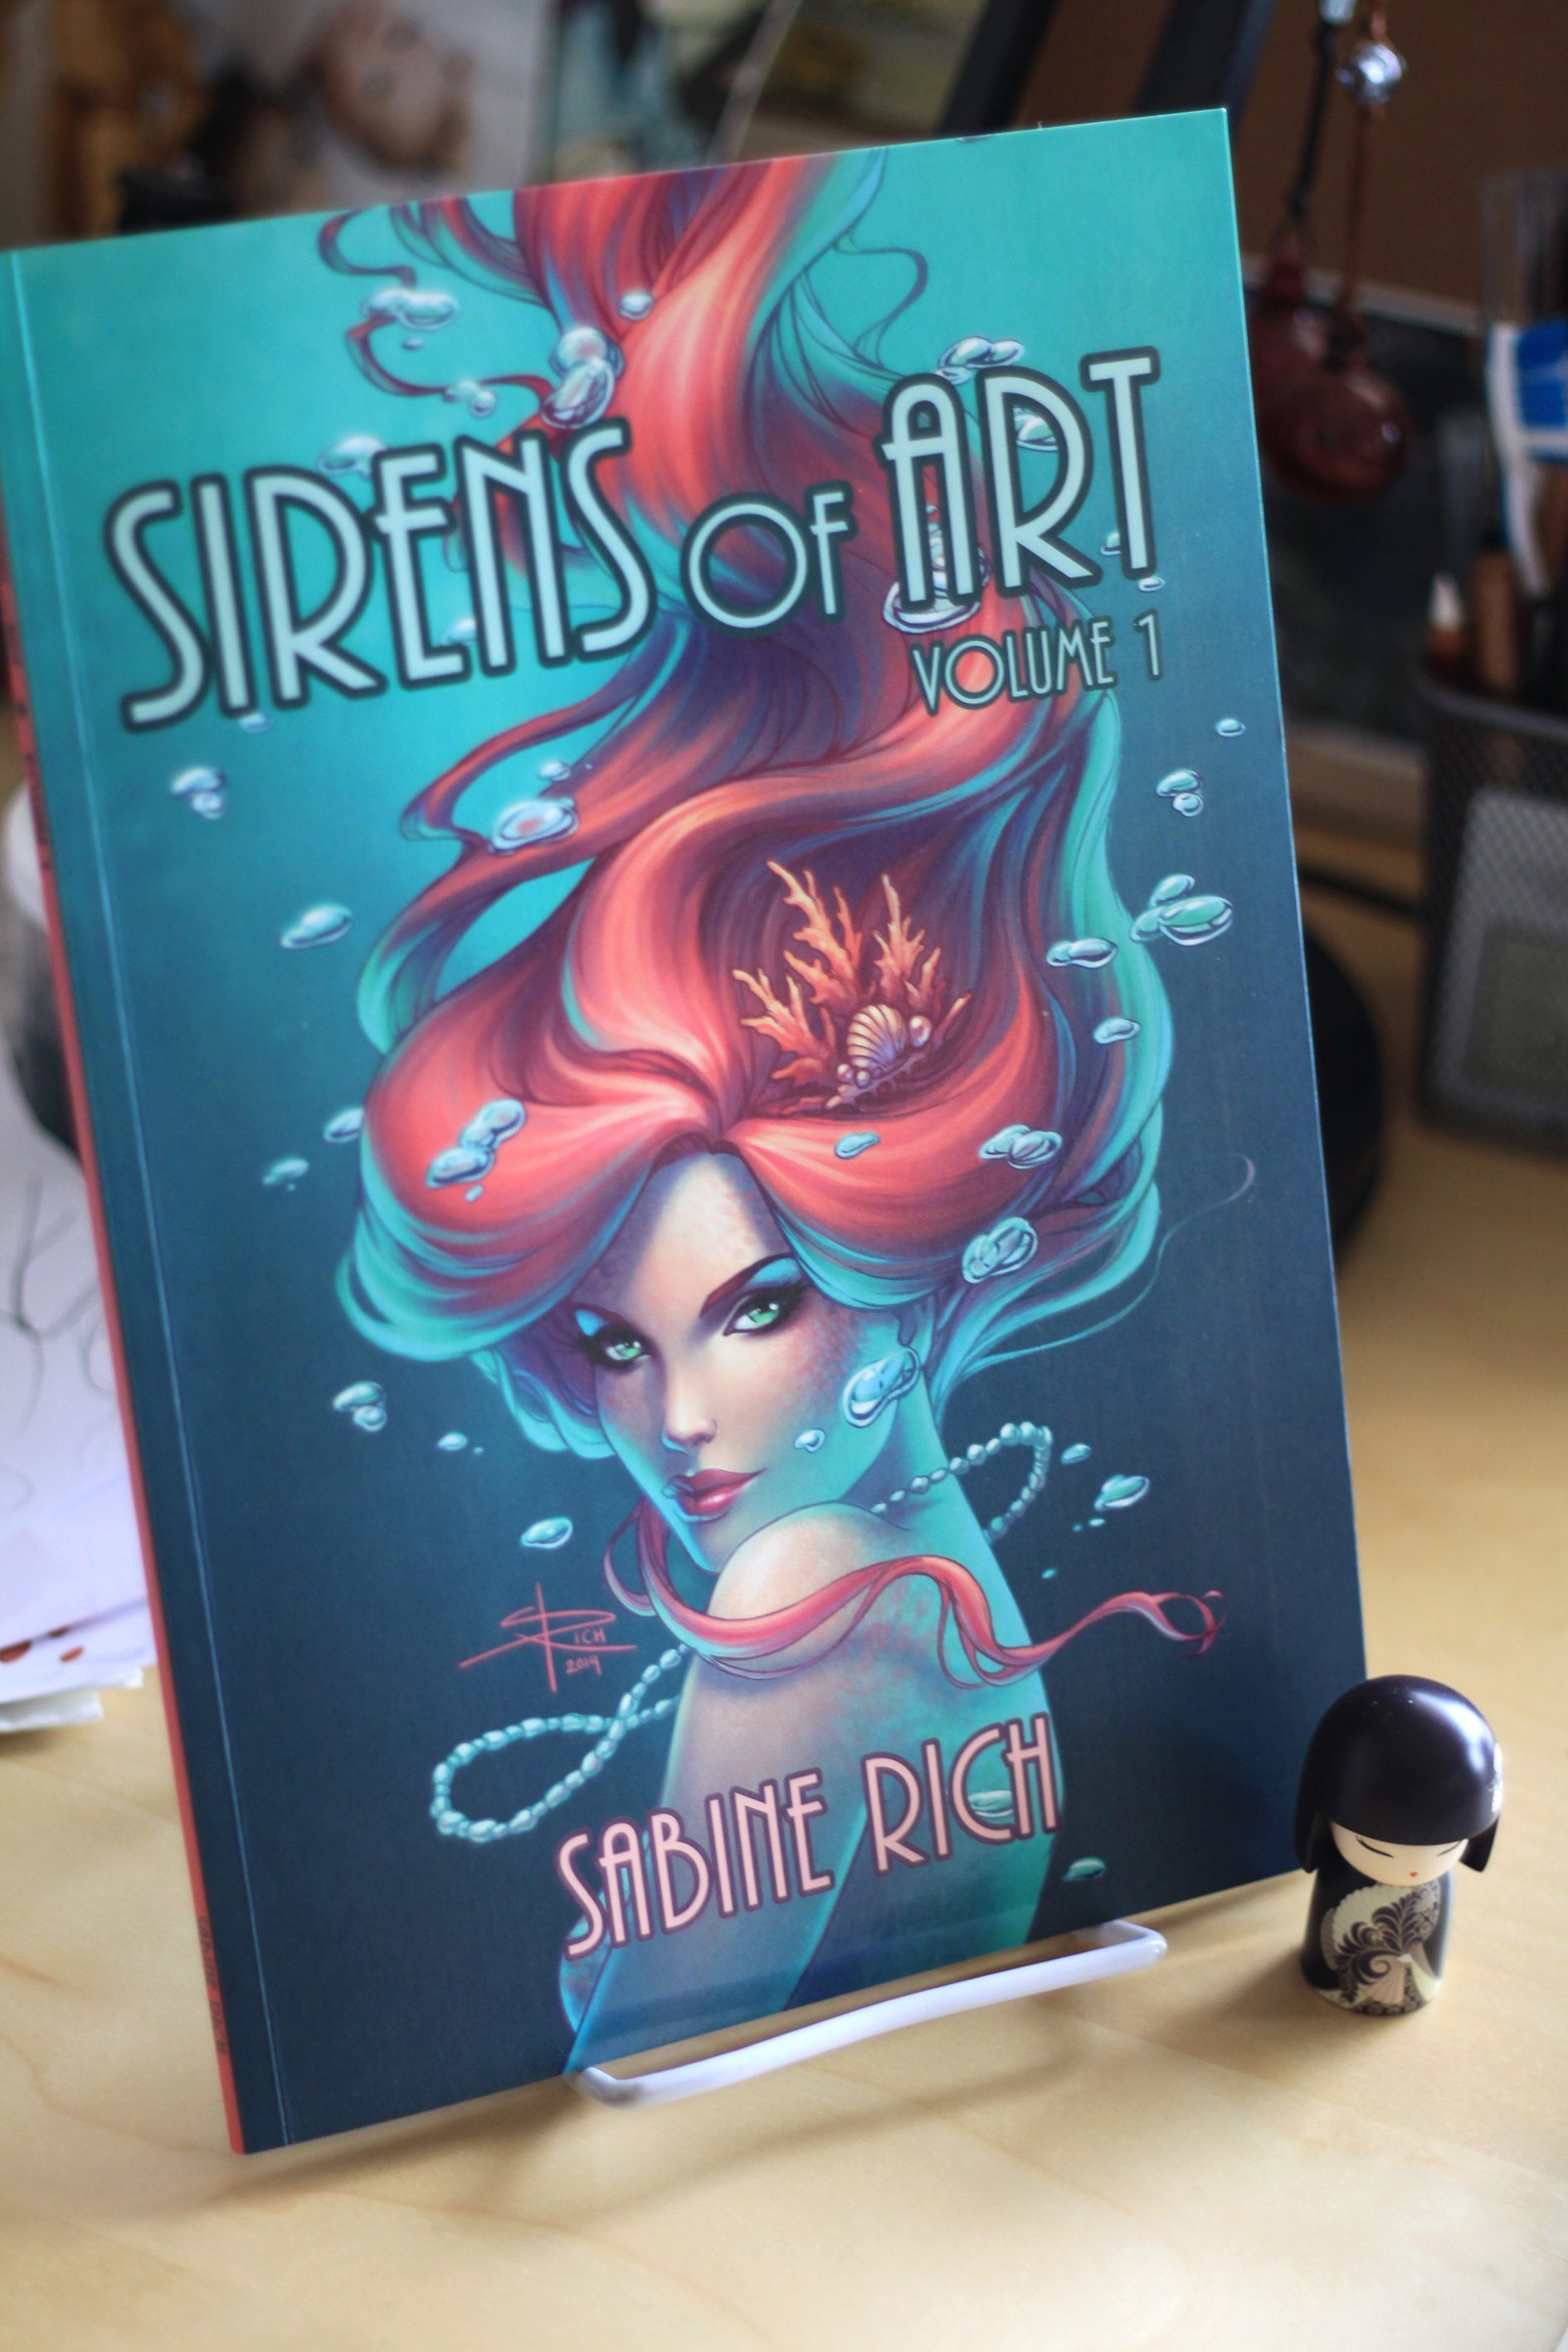 Sirens of Art